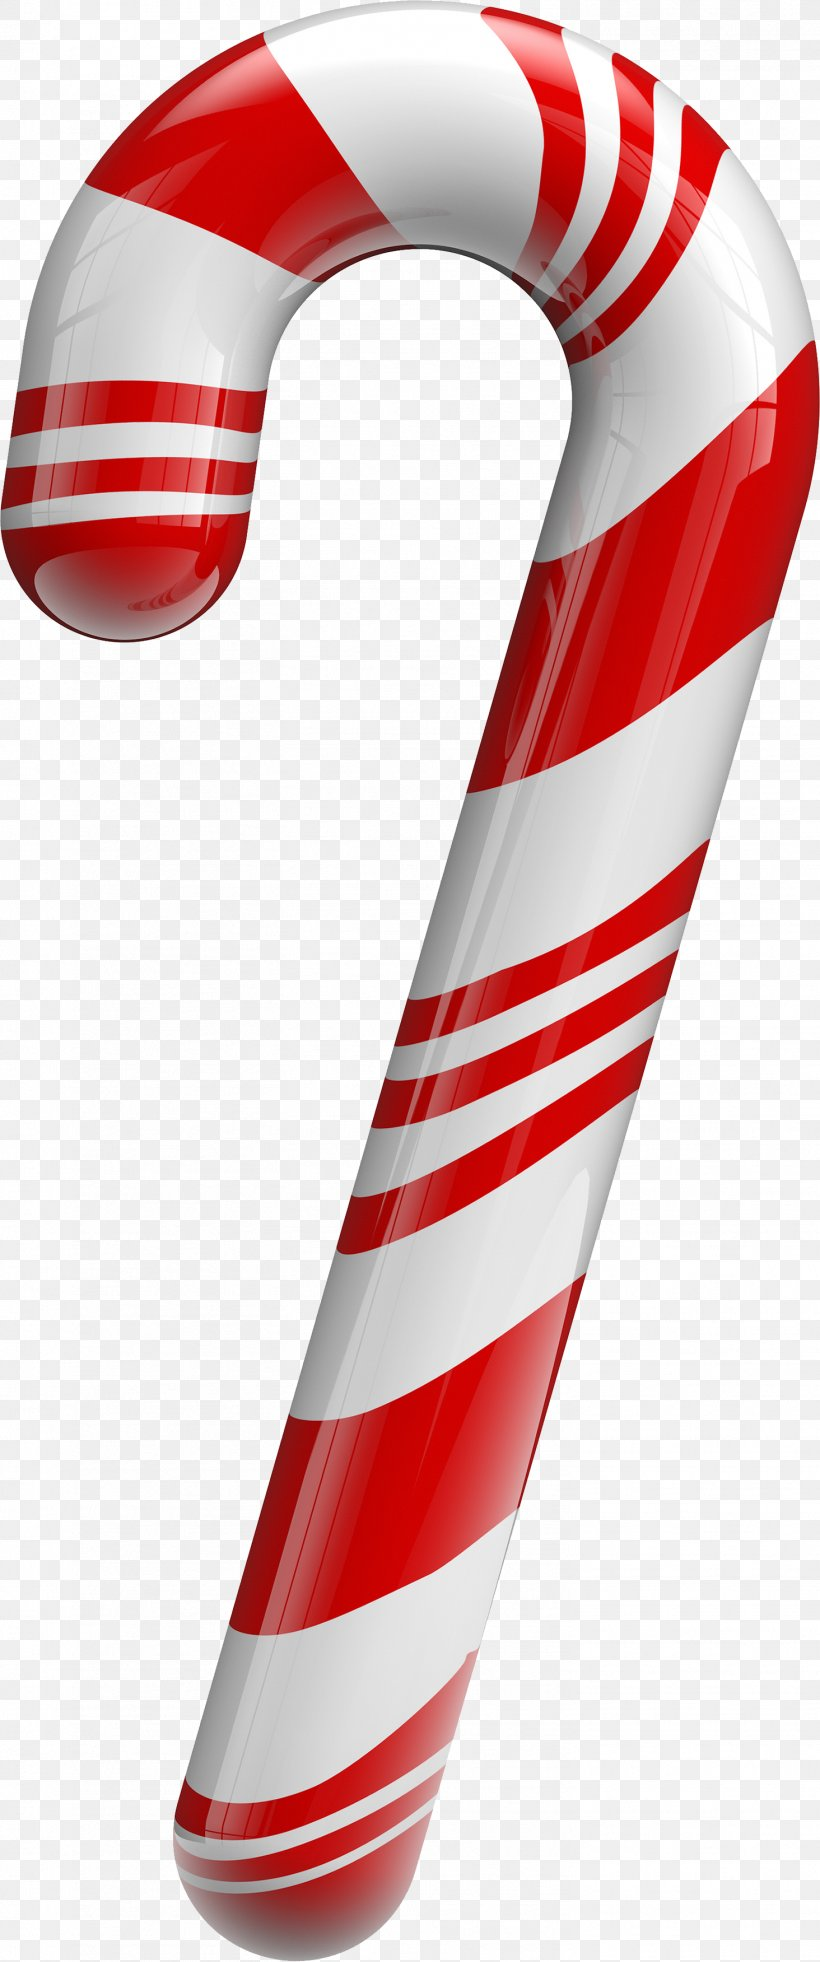 Christmas Candy Cane.Candy Cane Lollipop Christmas Clip Art Png 1464x3503px